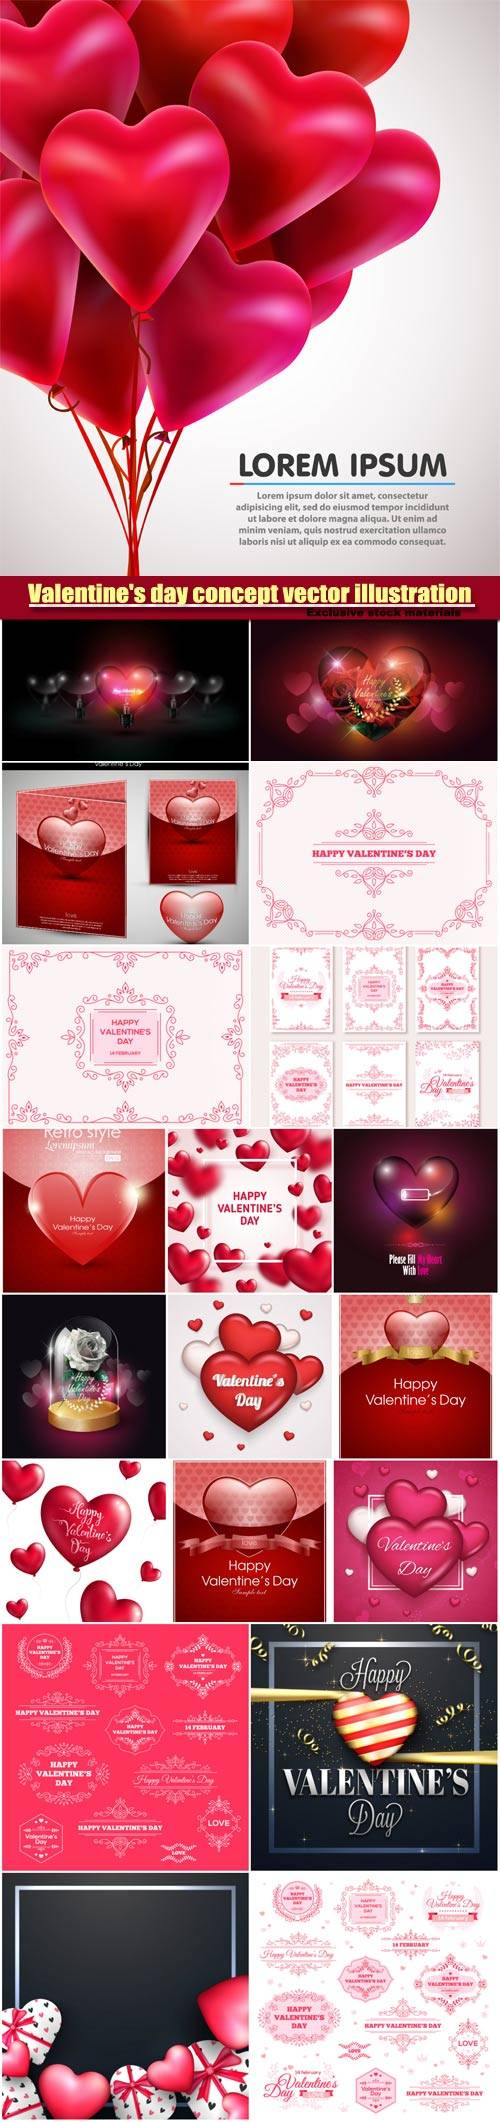 Valentine's day concept vector illustration